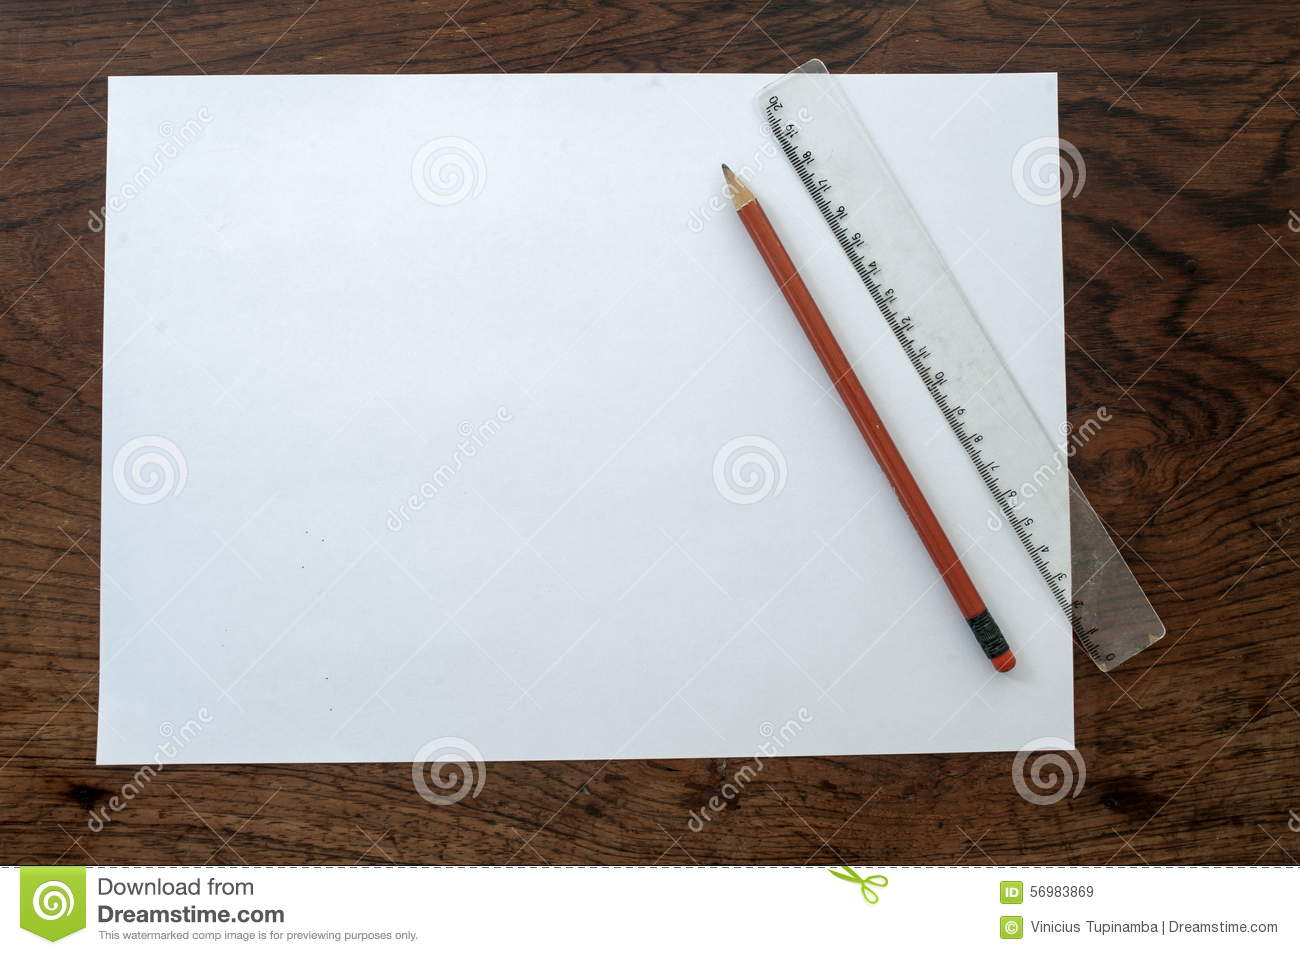 paper pencil and ruler stock image image of paper ruler 56983869